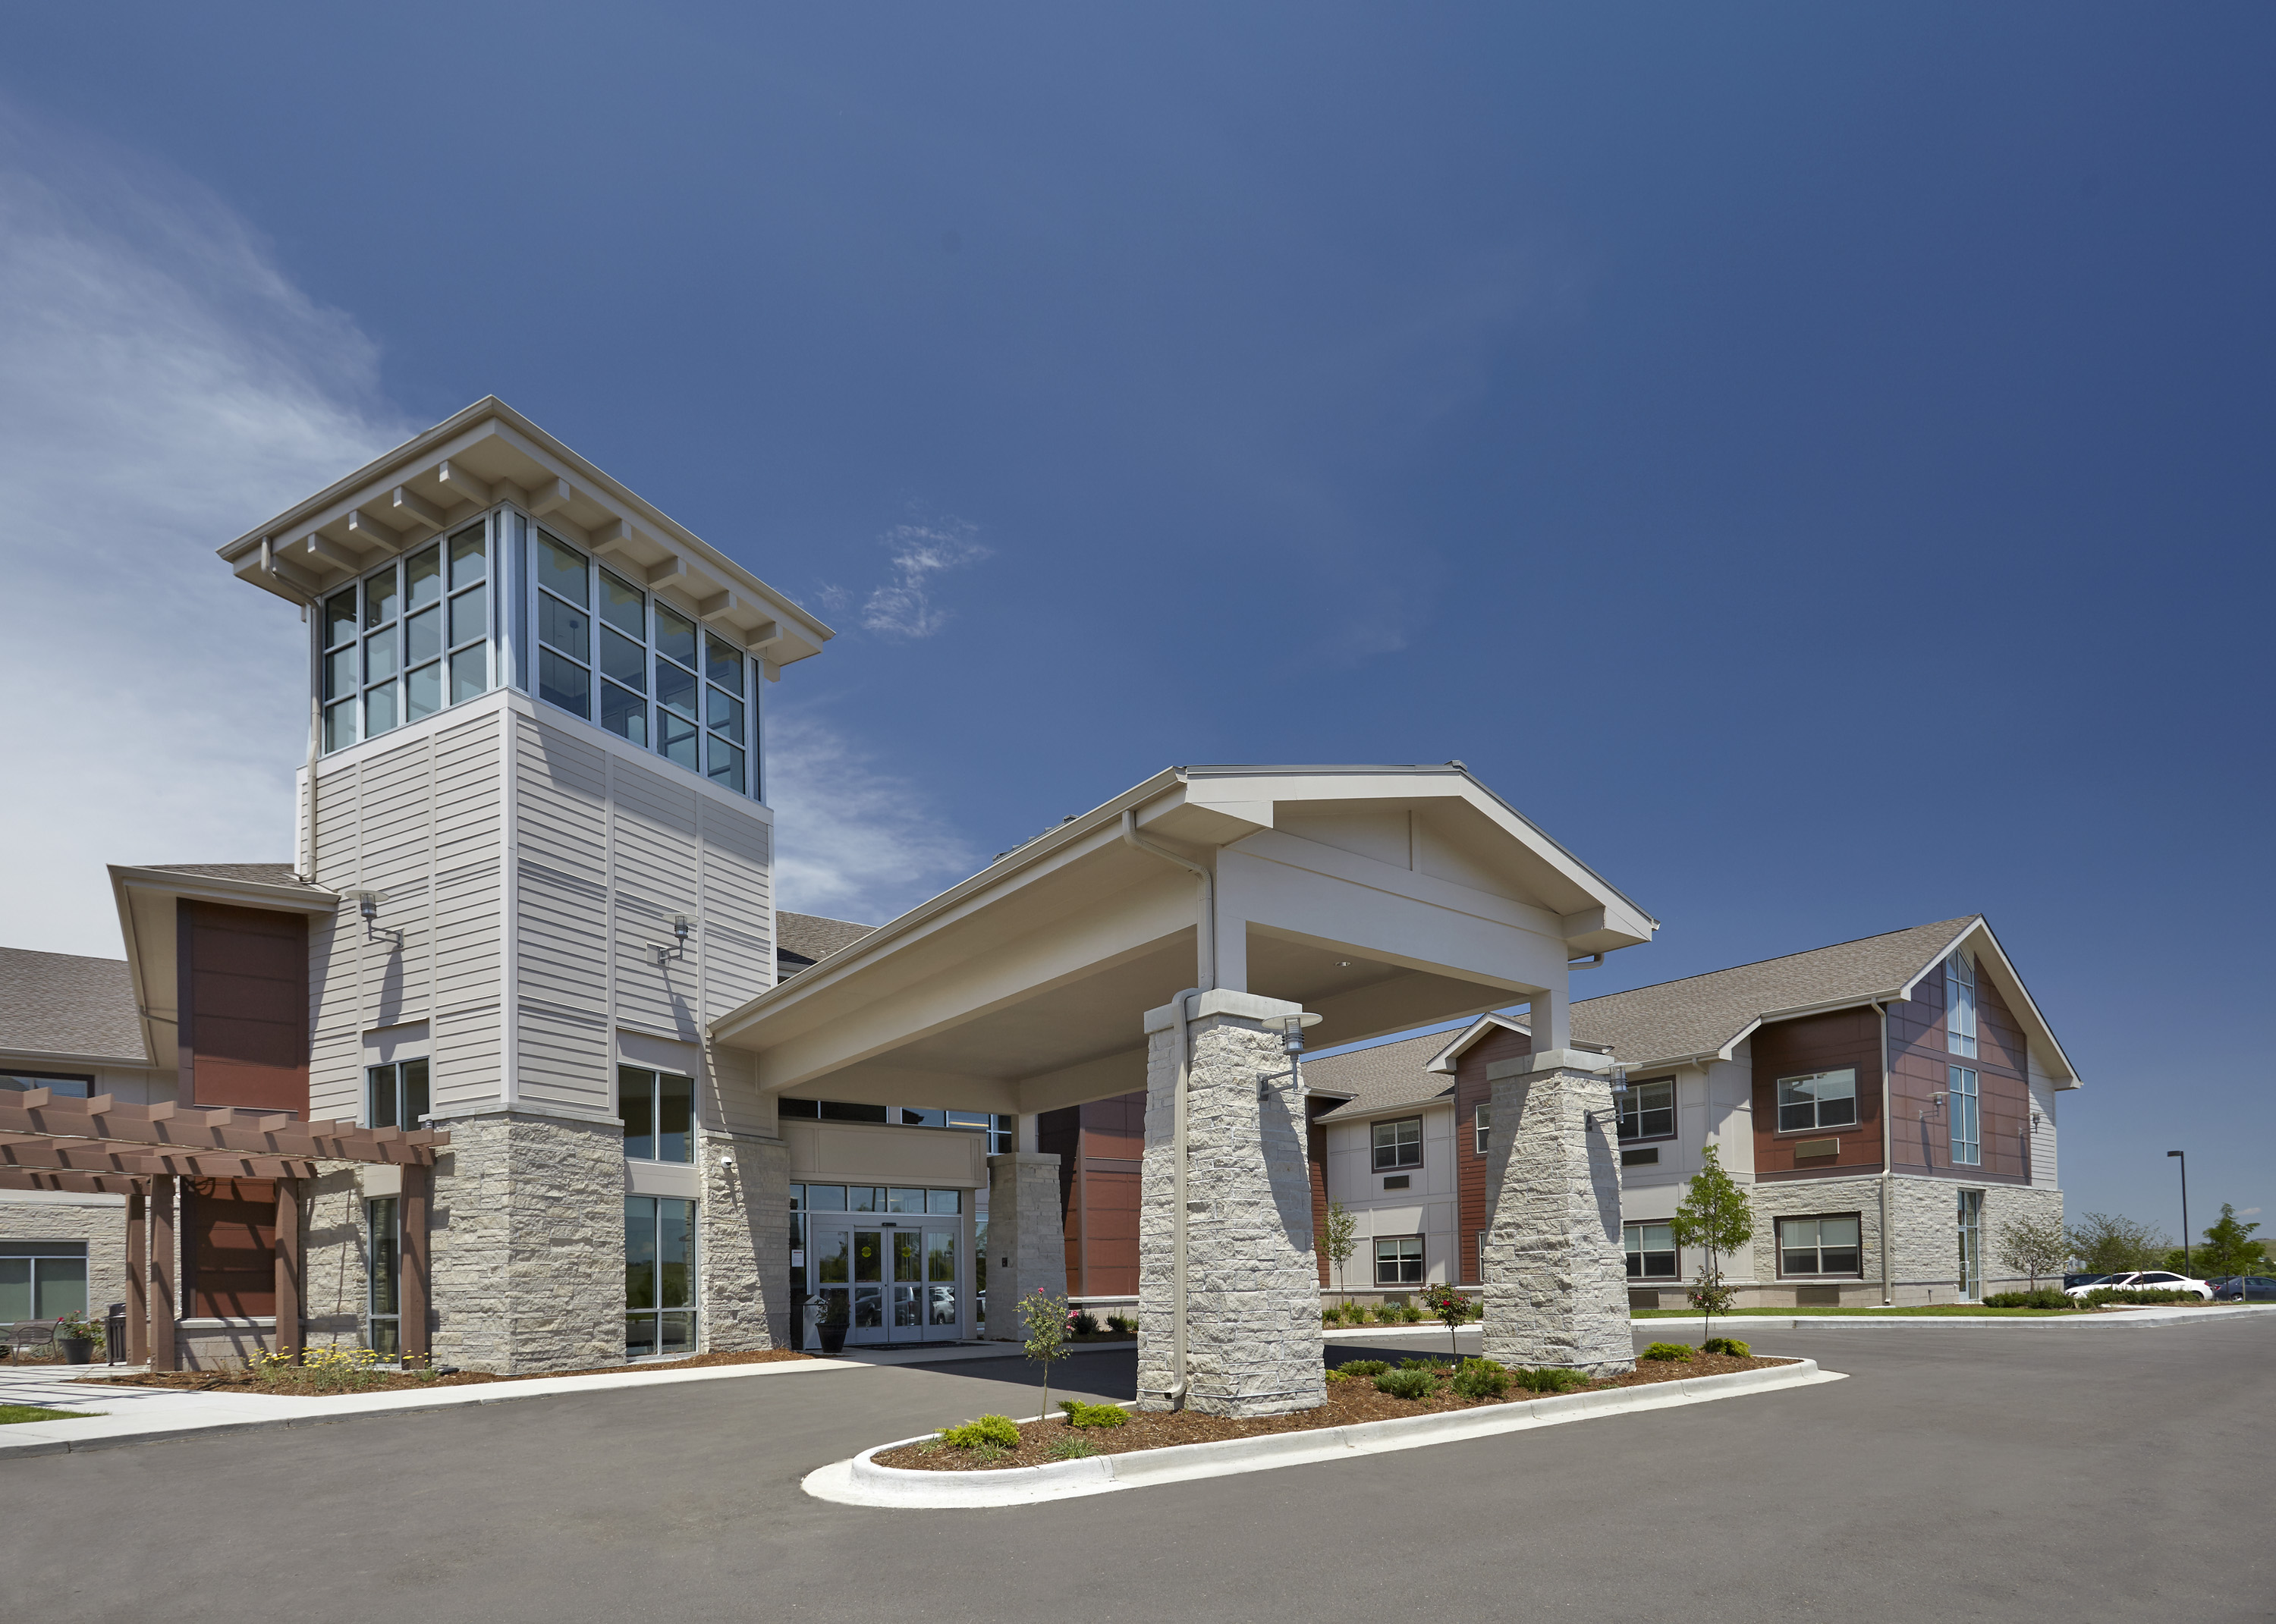 architects win design award for senior living innovation